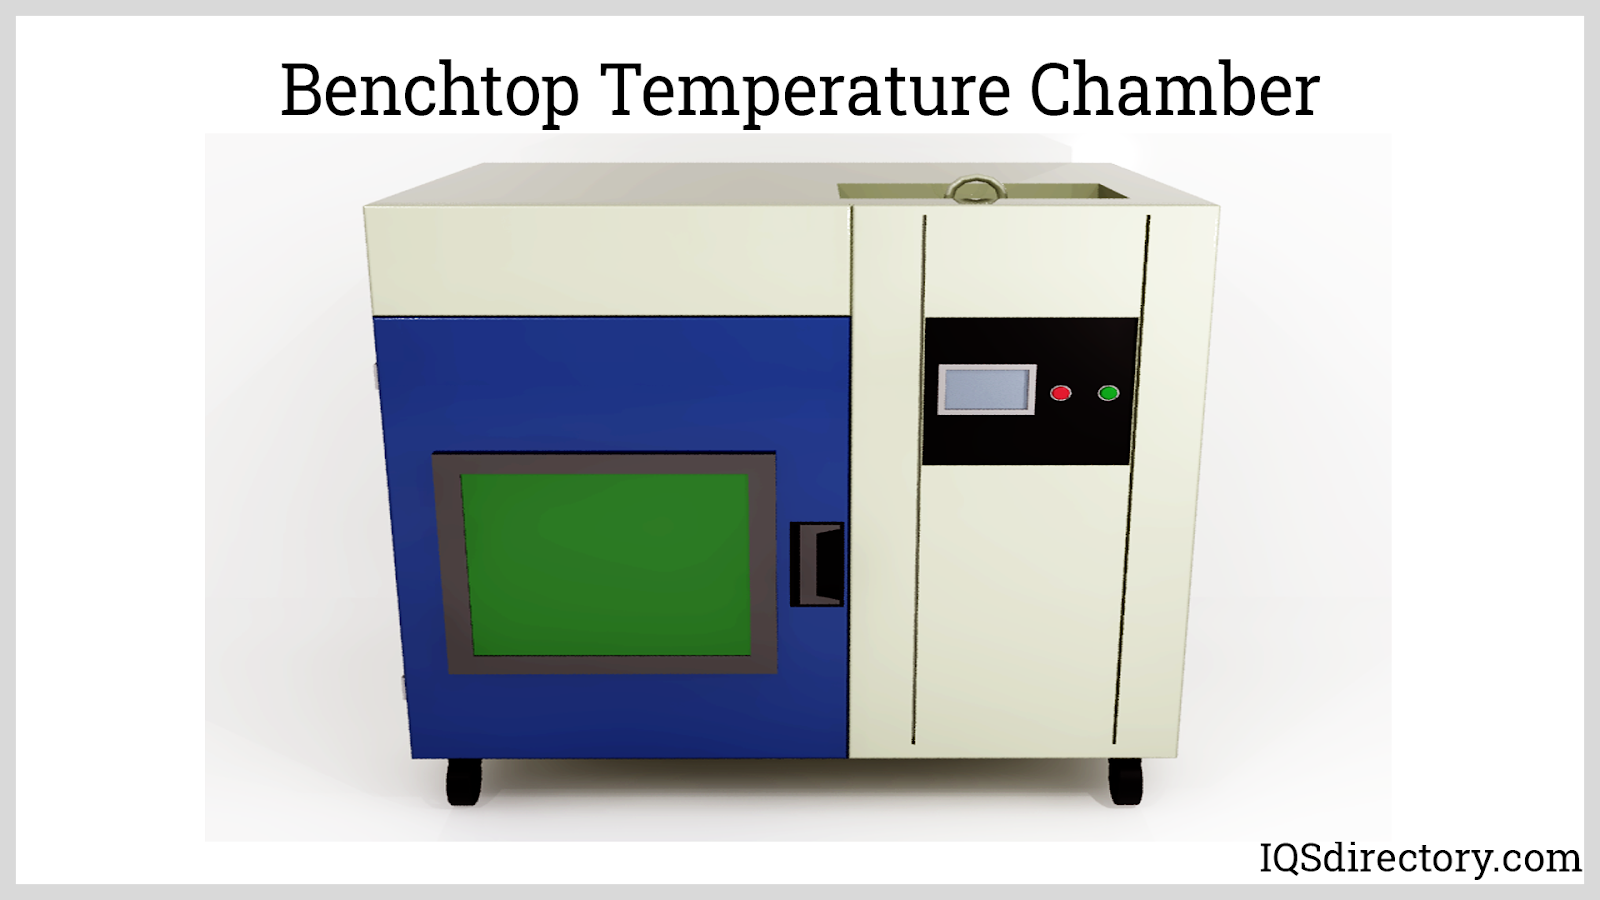 Benchtop Temperature Chamber